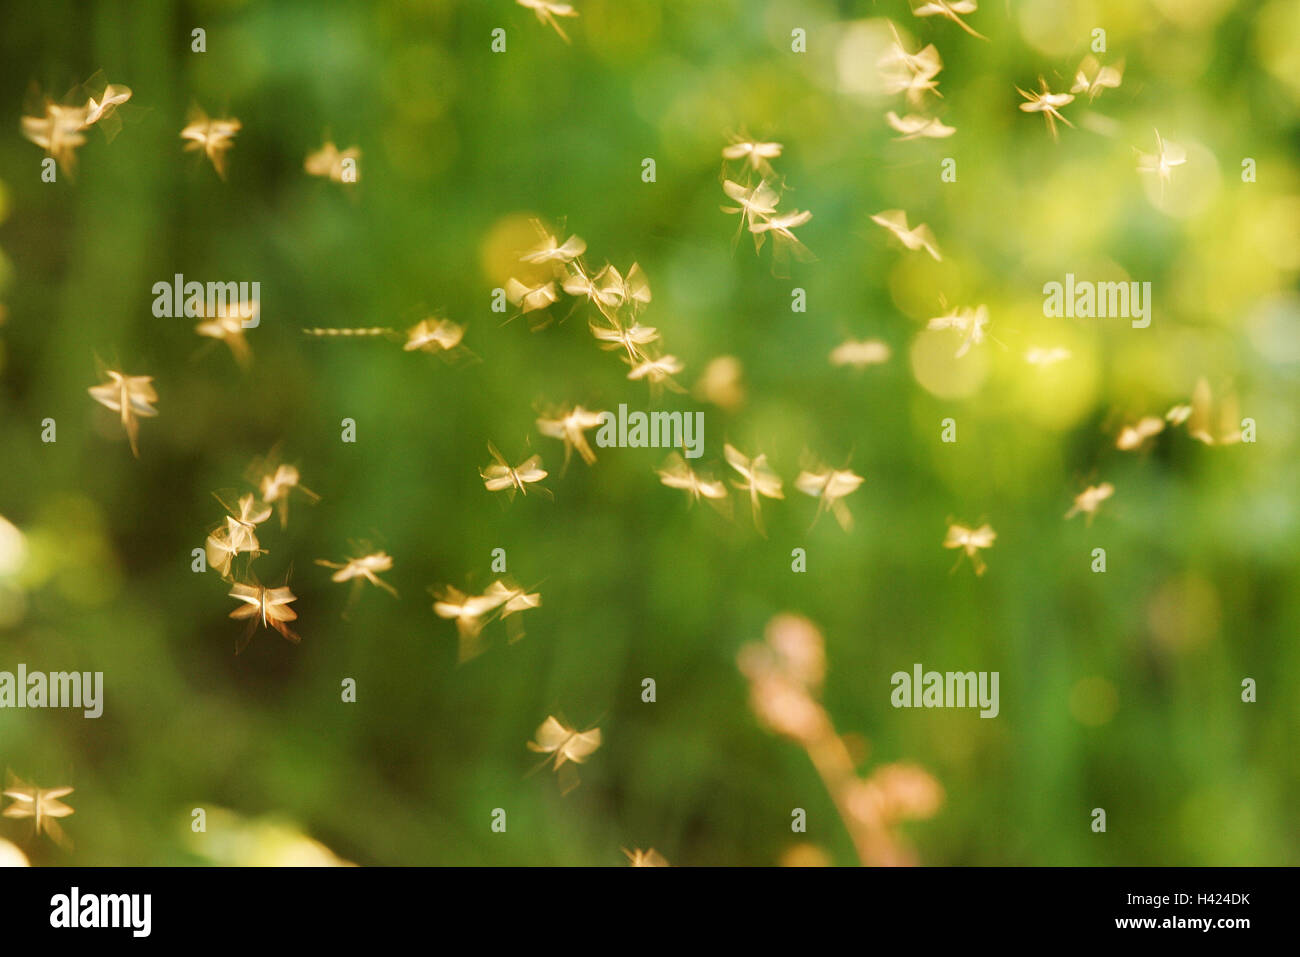 Swarm of mosquitoes, back light, insects, Stechmücken, mosquitoes, mosquitoes, Gelsen, Culicidae, bloodsuckers, Stock Photo